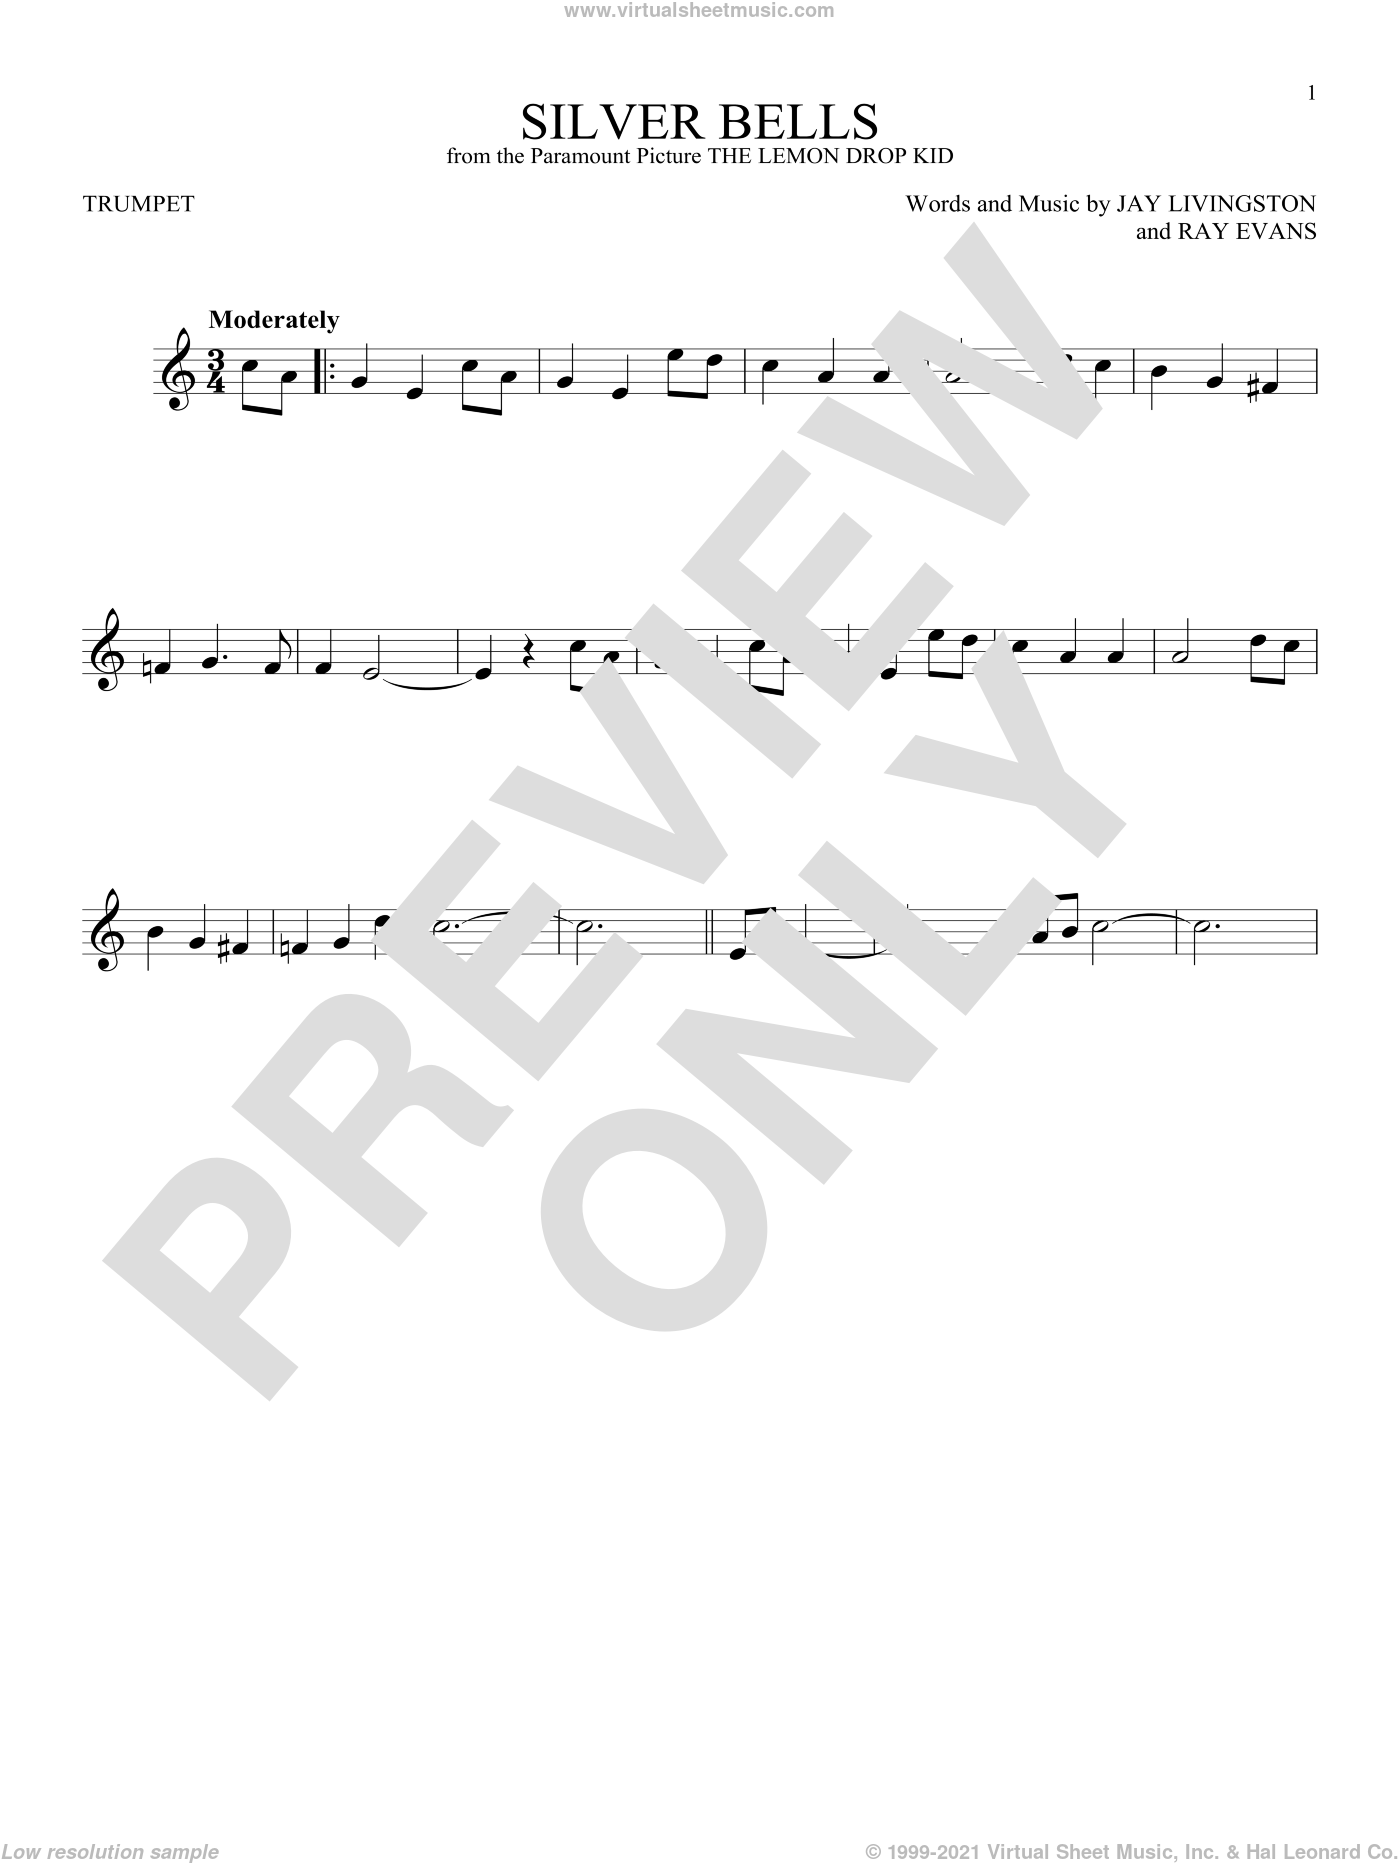 Silver Bells sheet music for trumpet solo by Jay Livingston, Jay Livingston & Ray Evans and Ray Evans, Christmas carol score, intermediate trumpet. Score Image Preview.